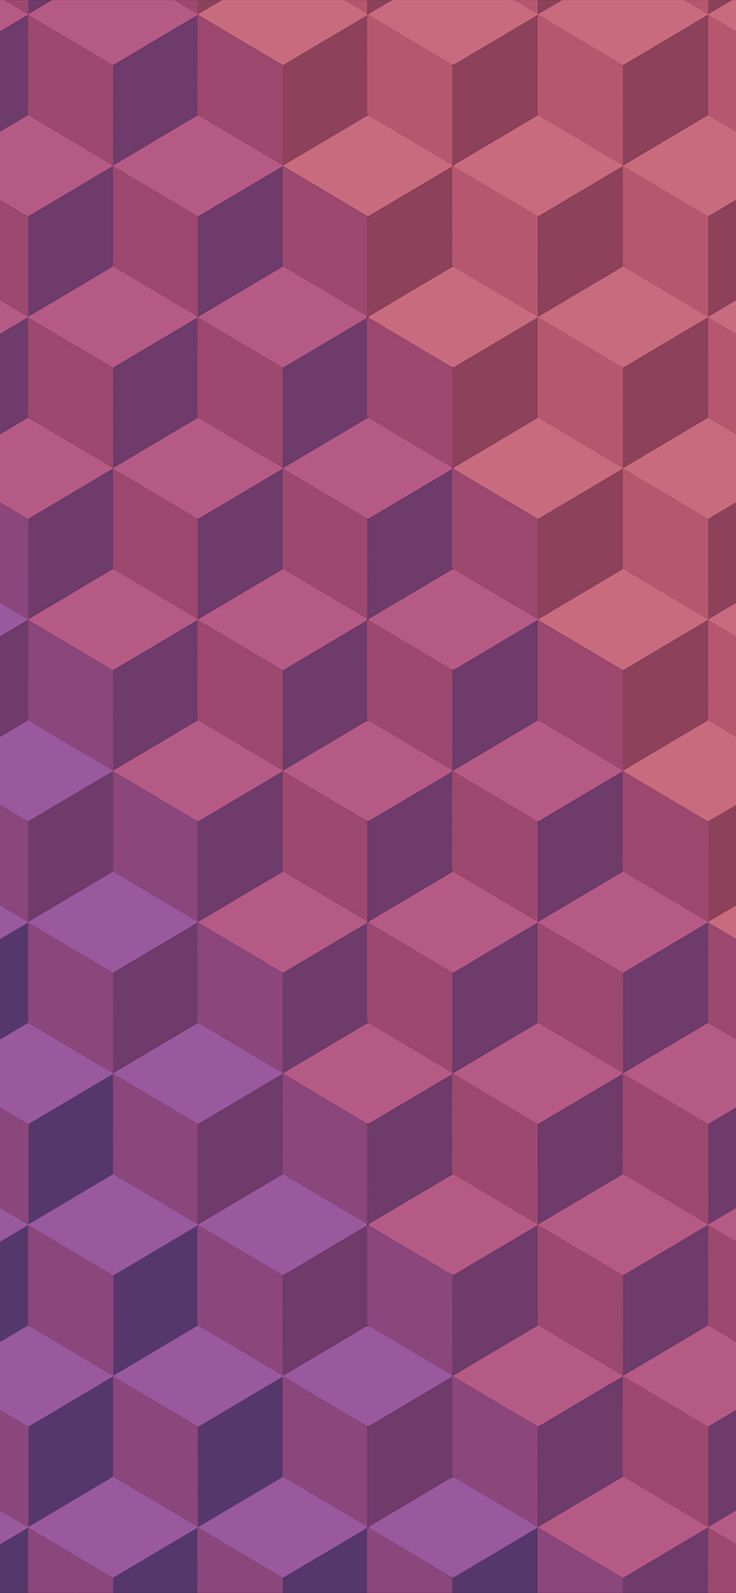 vg38-polygon-pink-art-graphic-pattern via http://iPhoneXpapers.com - Wallpapers for iPhone X